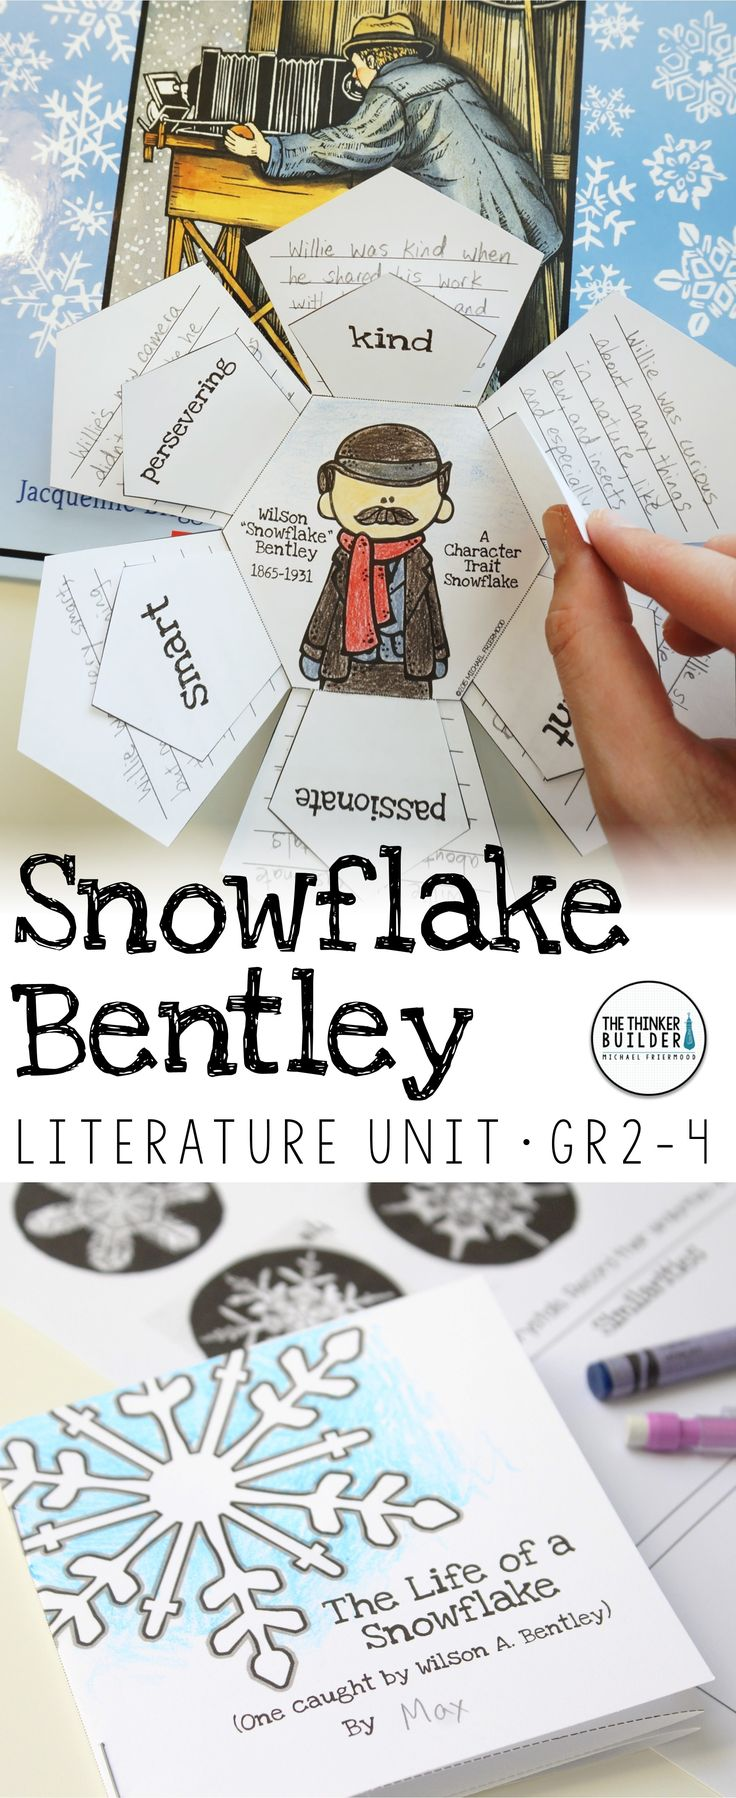 "An engaging literature unit for the picture book, Snowflake Bentley, by Jacqueline Briggs Martin, tons of story activities like a ""Character Trait Snowflake,"" vocabulary, background, and writing extensions. (Gr.2-4) $"